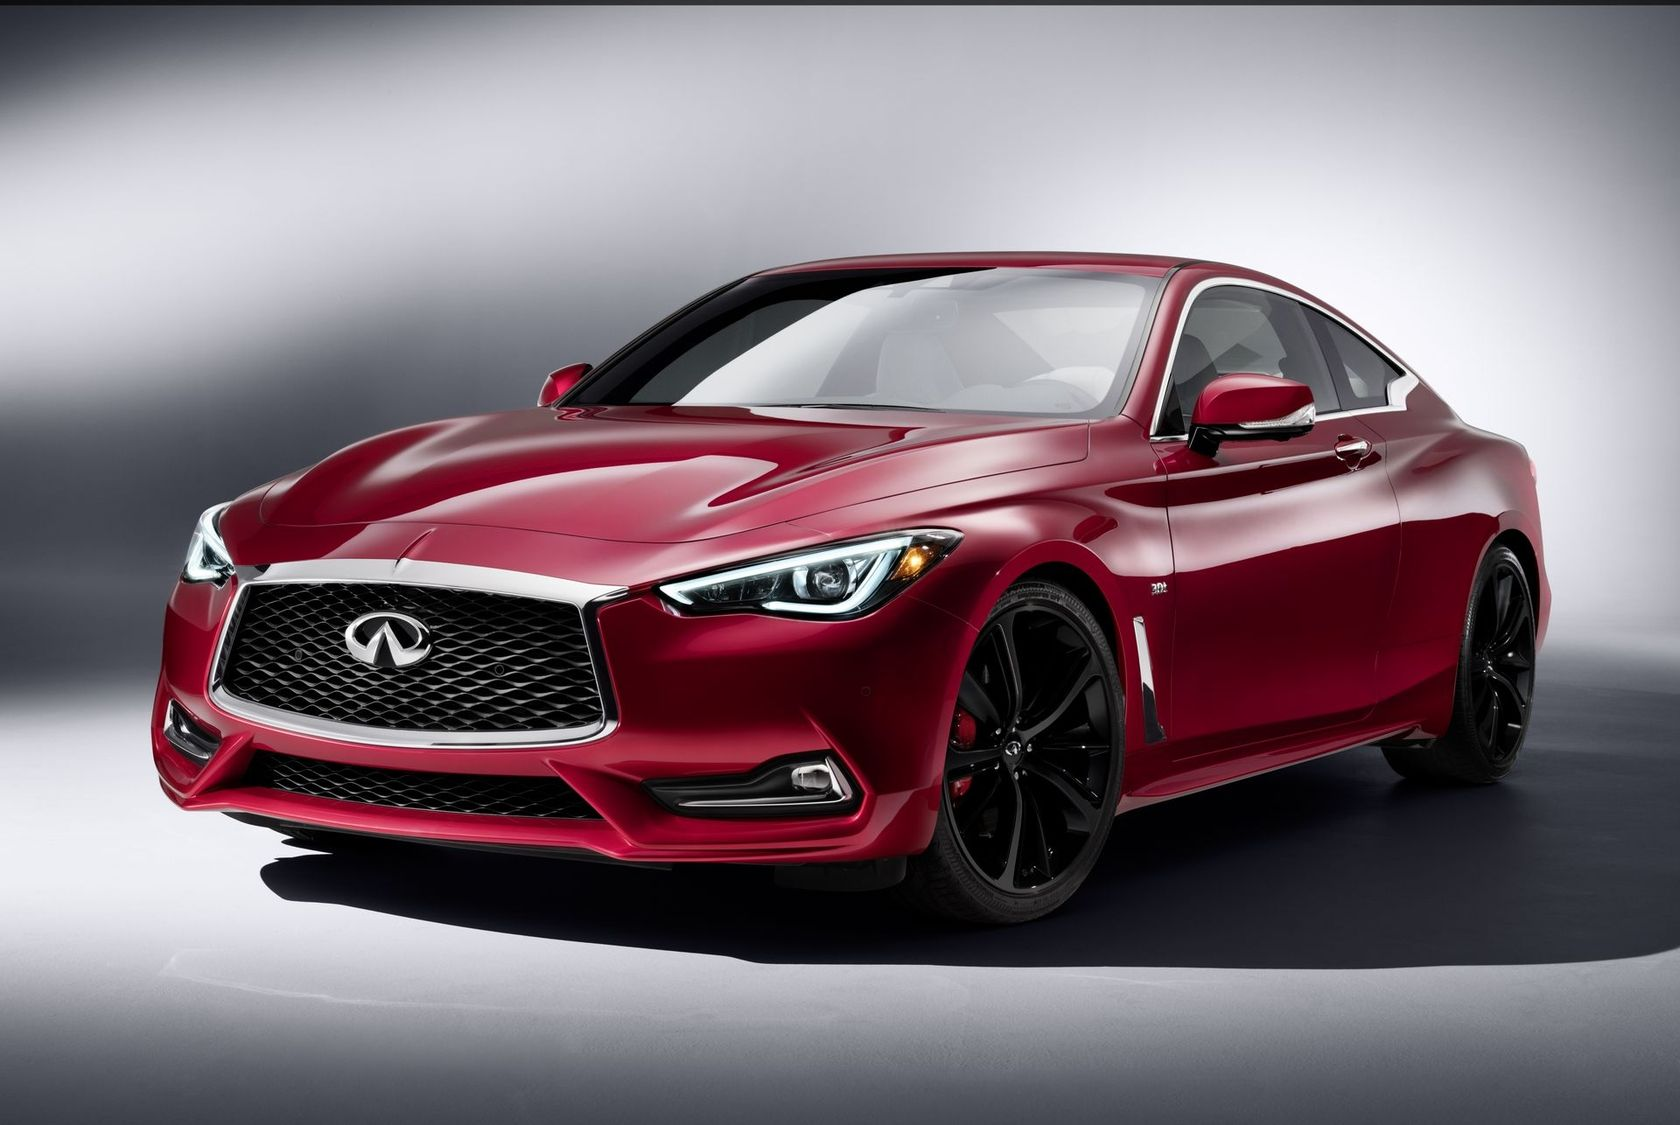 2017 Infiniti Q60 Sports Coupe Pictures Auto, Carros